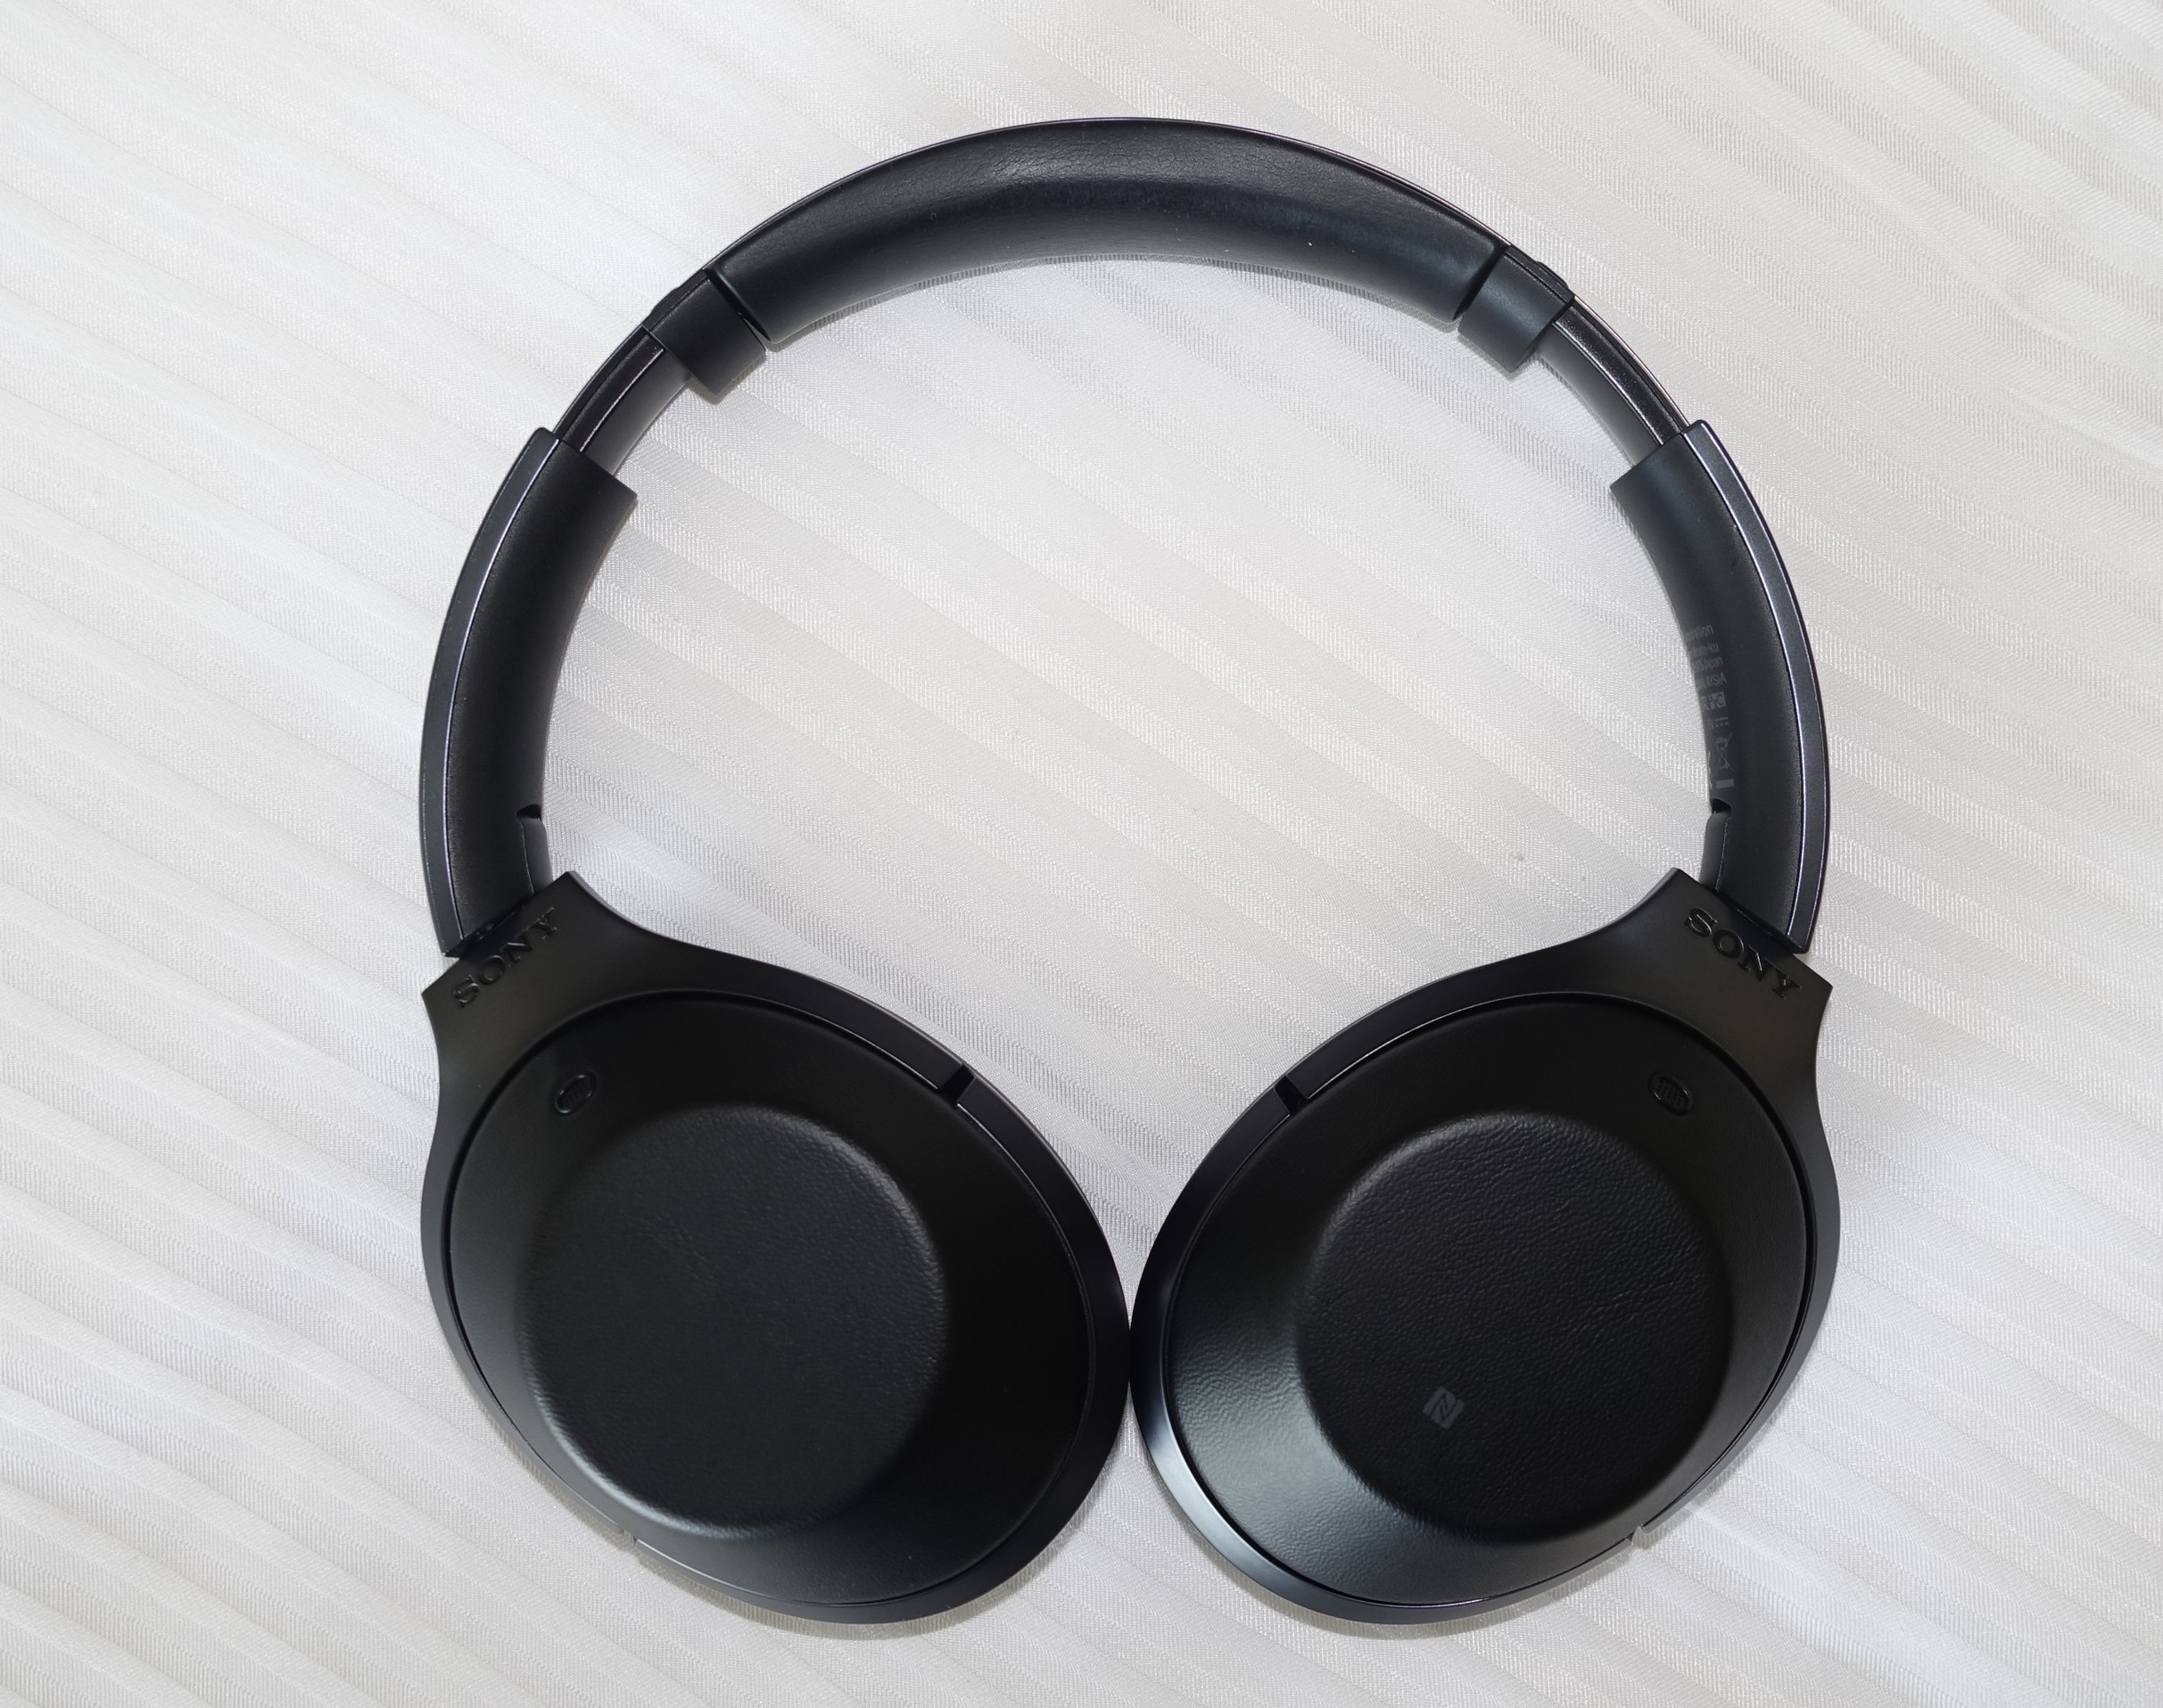 Sonys Mdr 1000x Headphones Reviewed Are They The Best Noise Sony Noice Cancelling Bluetooth Headphone Today By Trevor Long Posted On September 13 2016